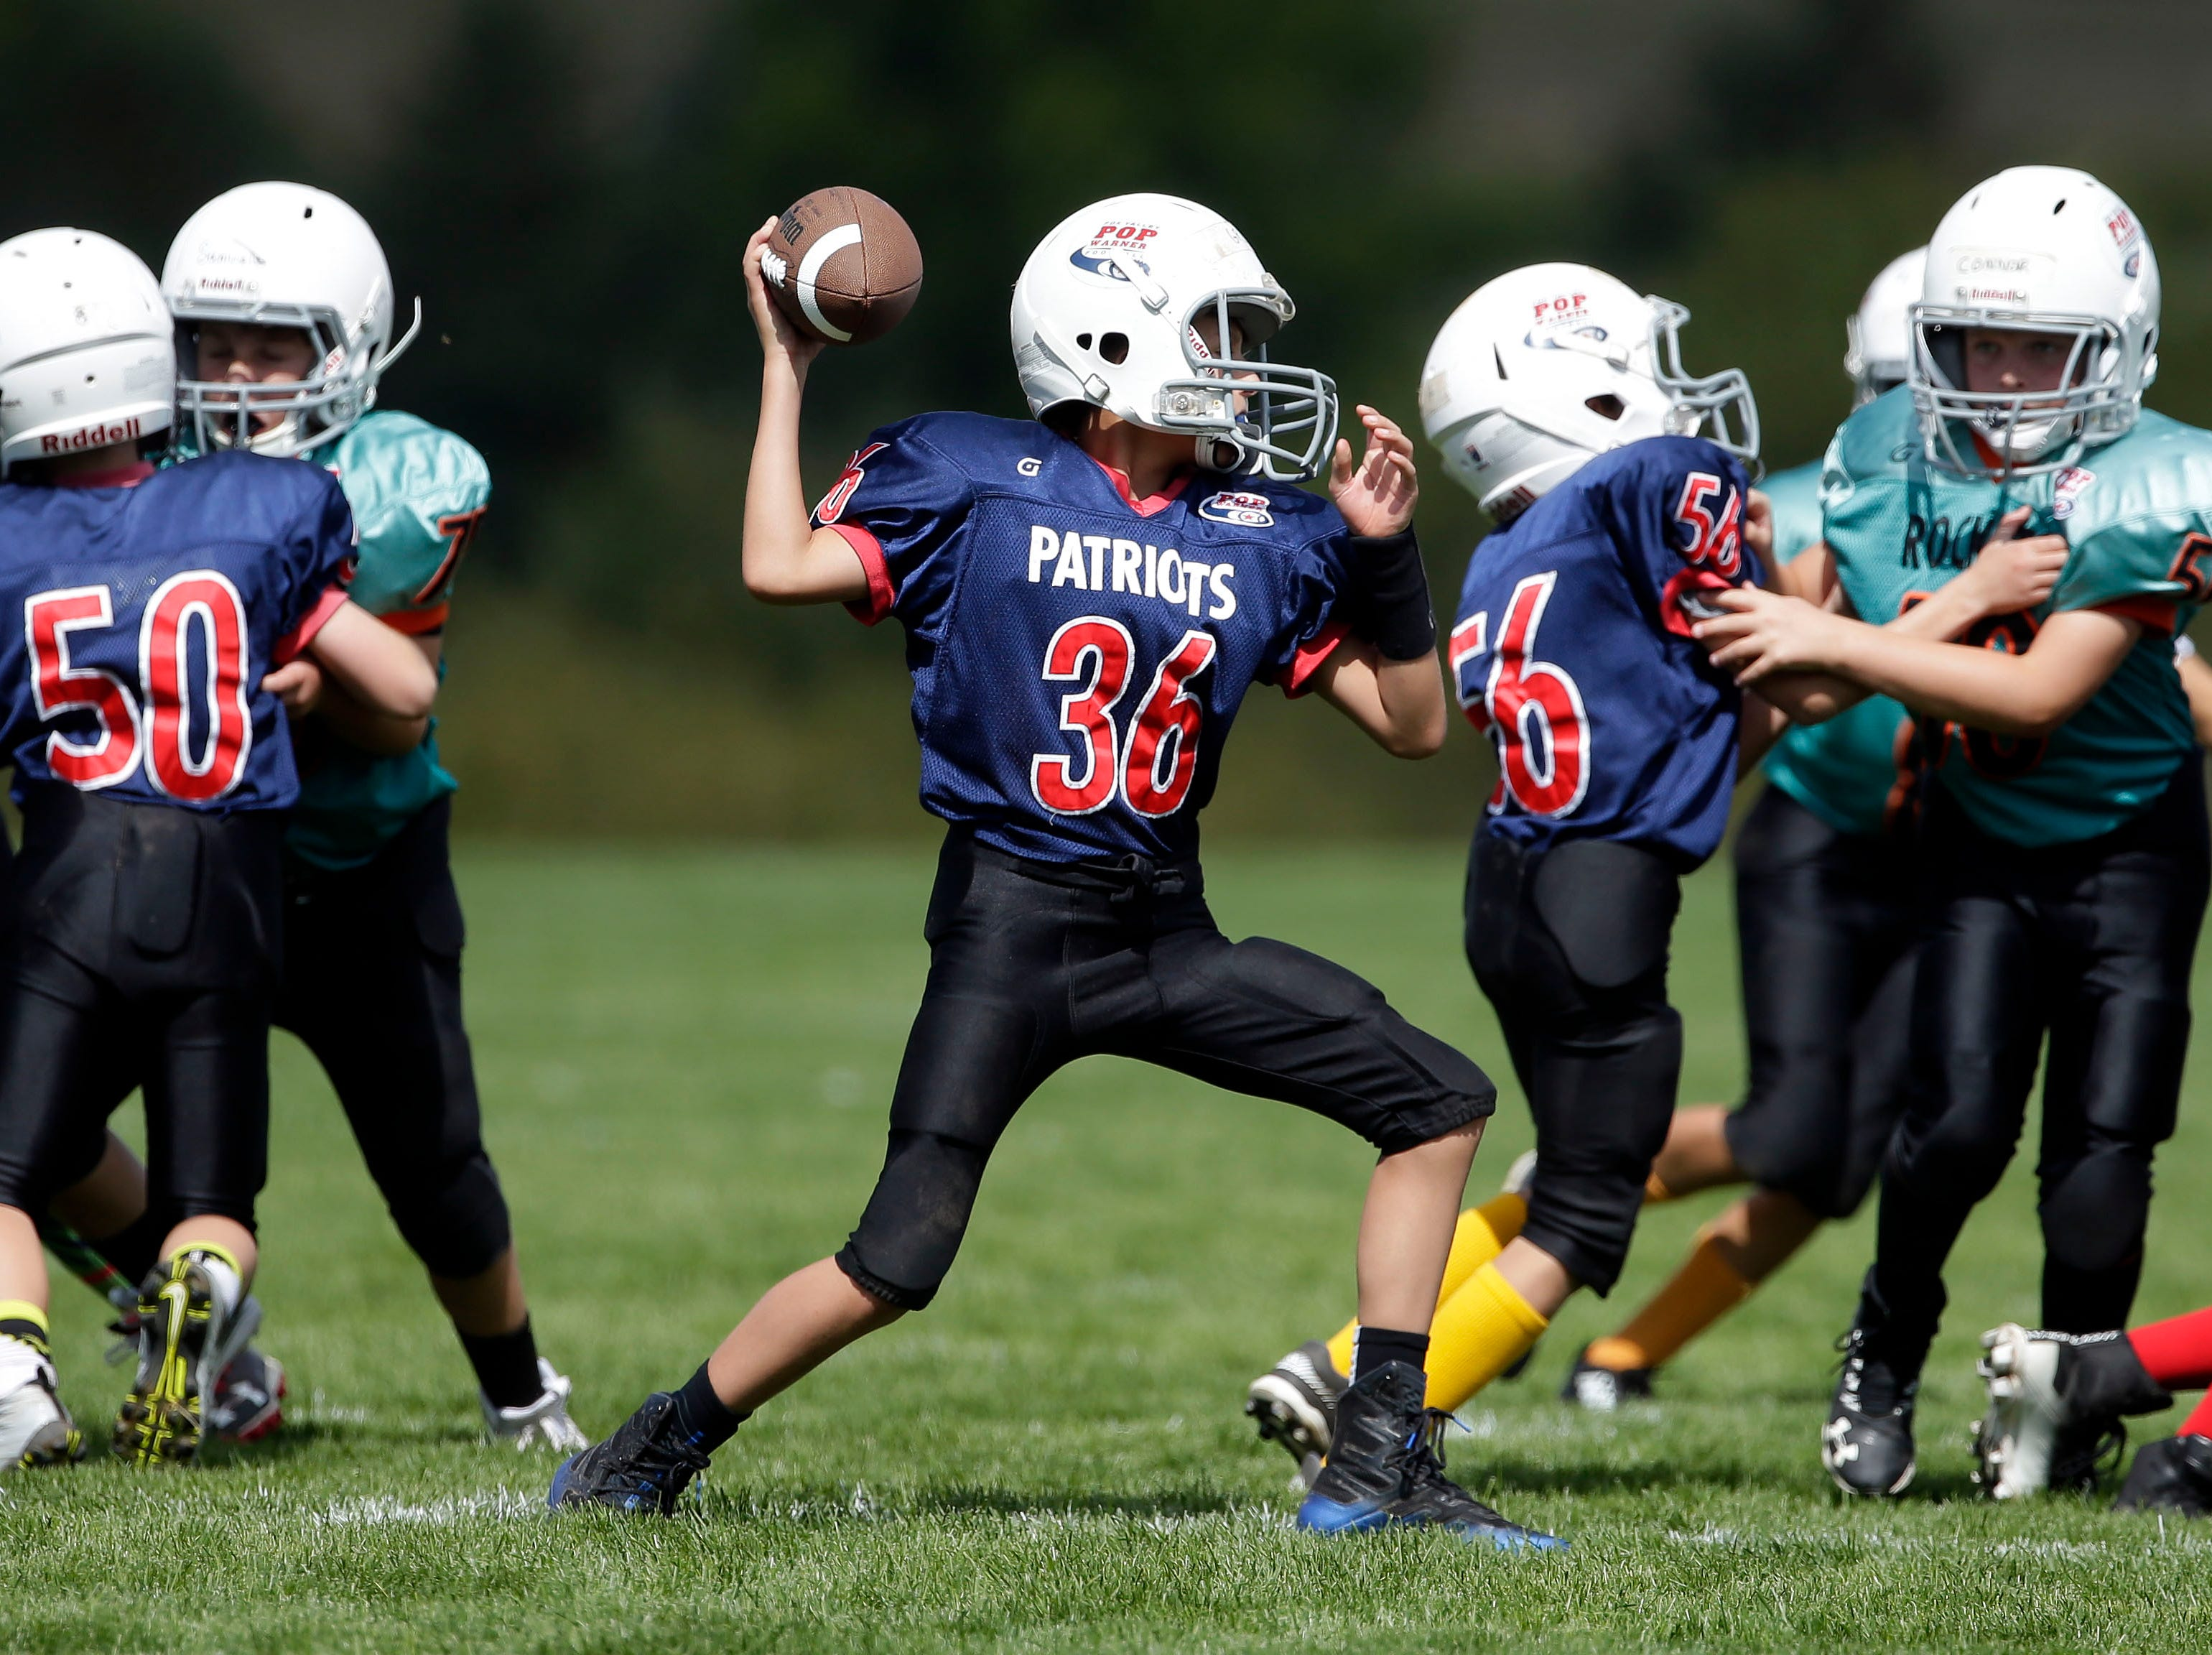 Griffin Heckert of the Patriots passes against the Rockets as Fox Valley Pop Warner Football opens the season Saturday, September 8, 2018, at Plamann Park in Grand Chute, Wis.Ron Page/USA TODAY NETWORK-Wisconsin